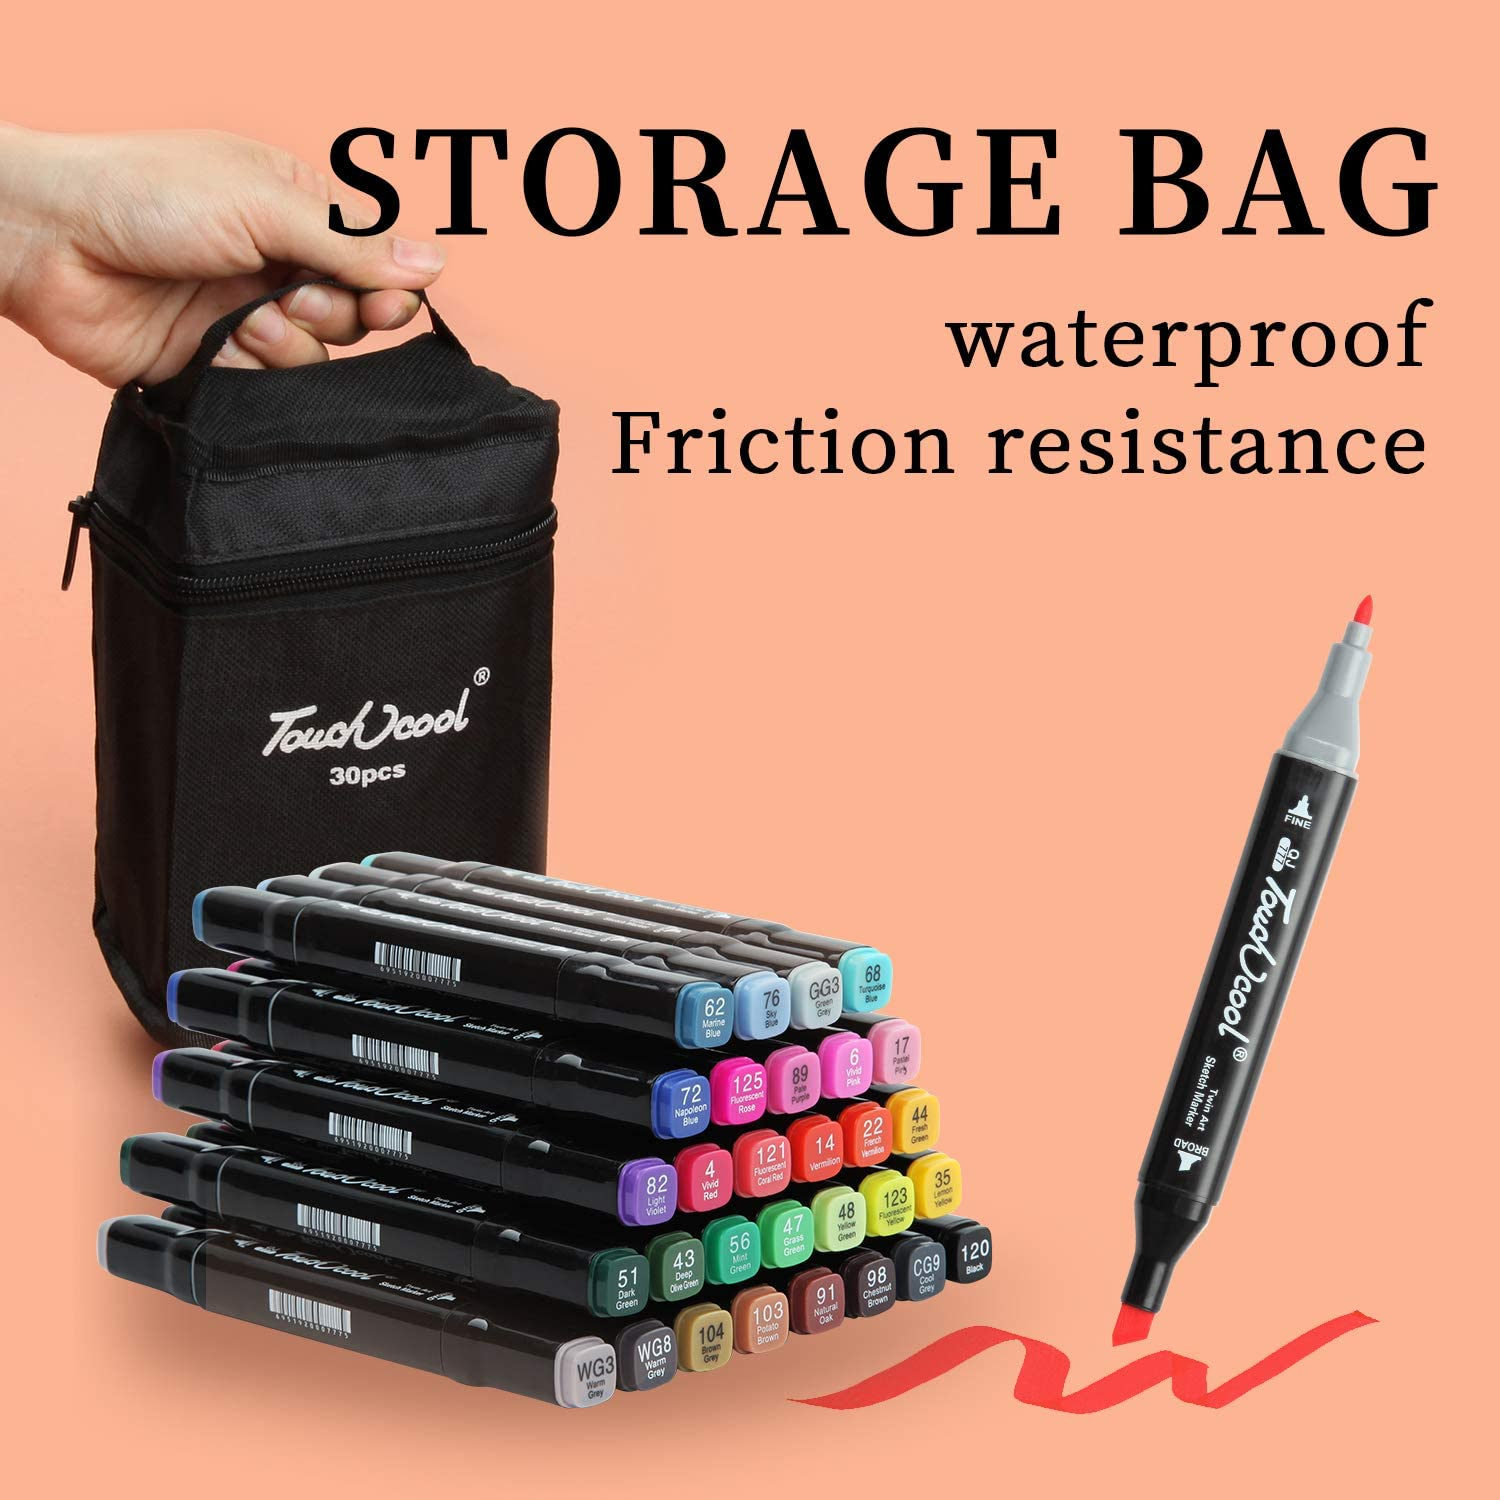 Marker Pens 30 Color Alcohol Graphic Design Pen Permanent Highlighter Markers With Carrying Bag for Drawing Sketching Painting Manga Design Scribbling Dual Tips Twin Touch Sketch Marker Set